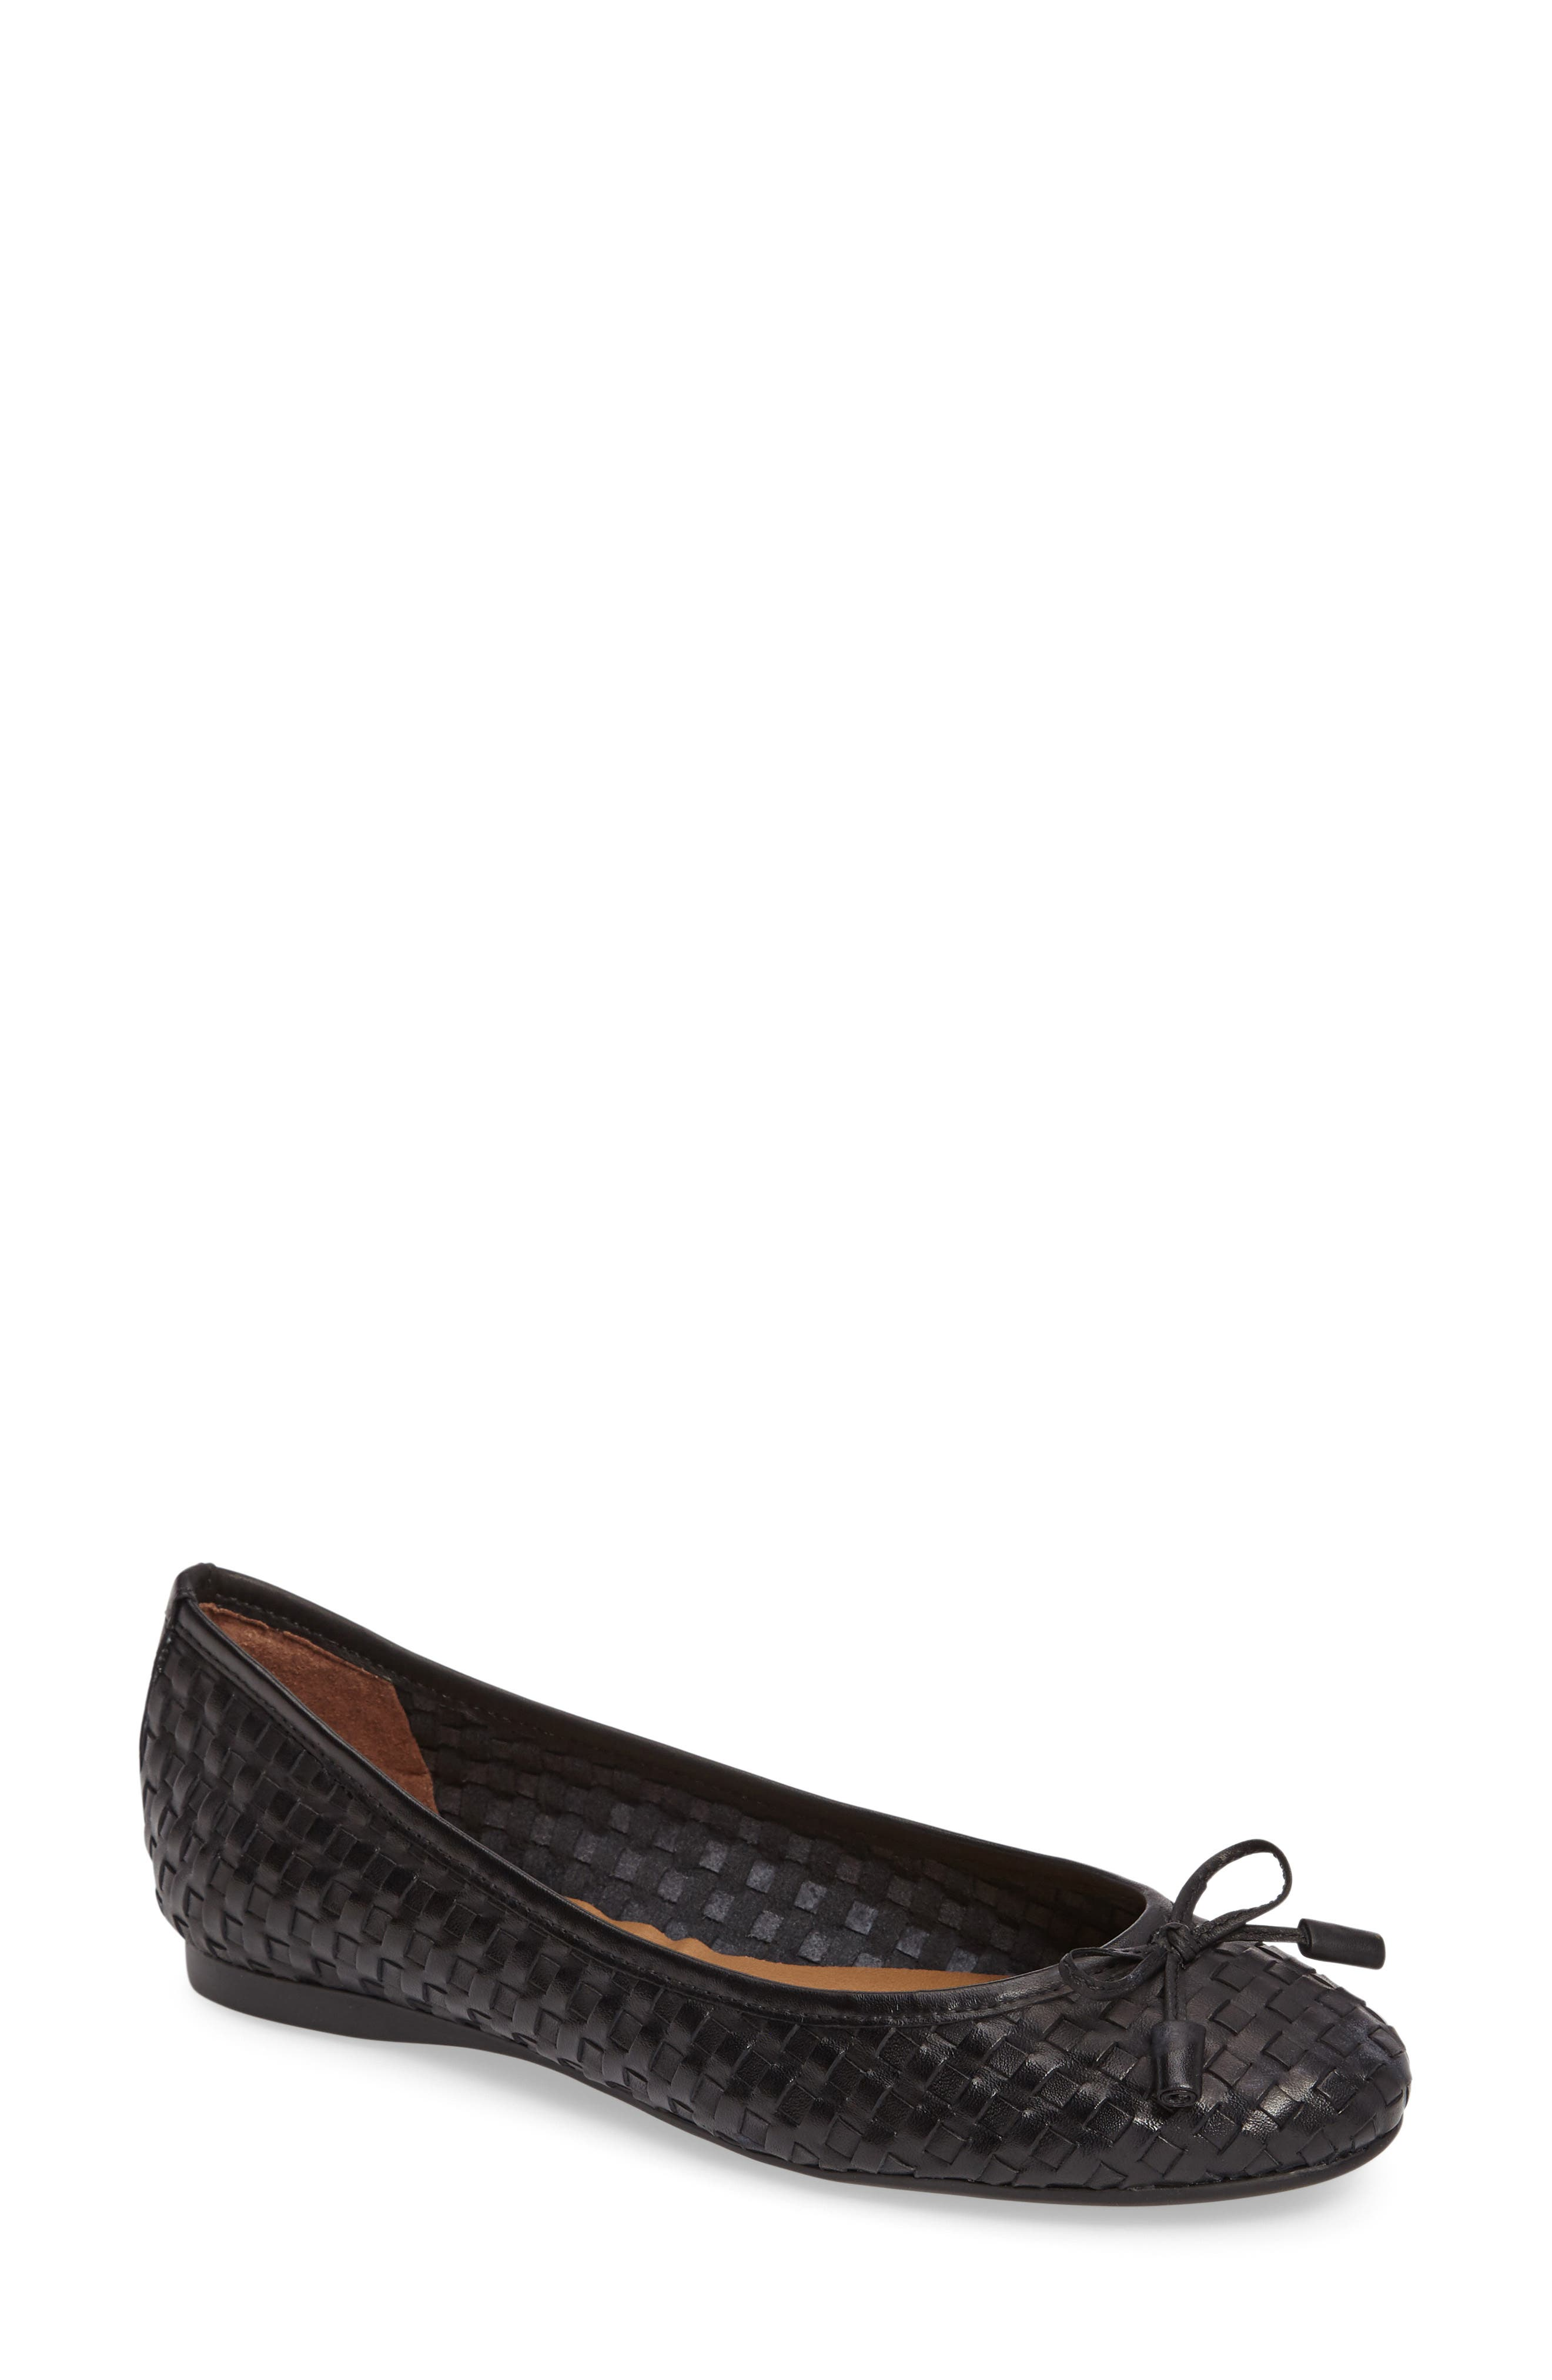 FRENCH SOLE Vogue Ballet Flat, Main, color, 001